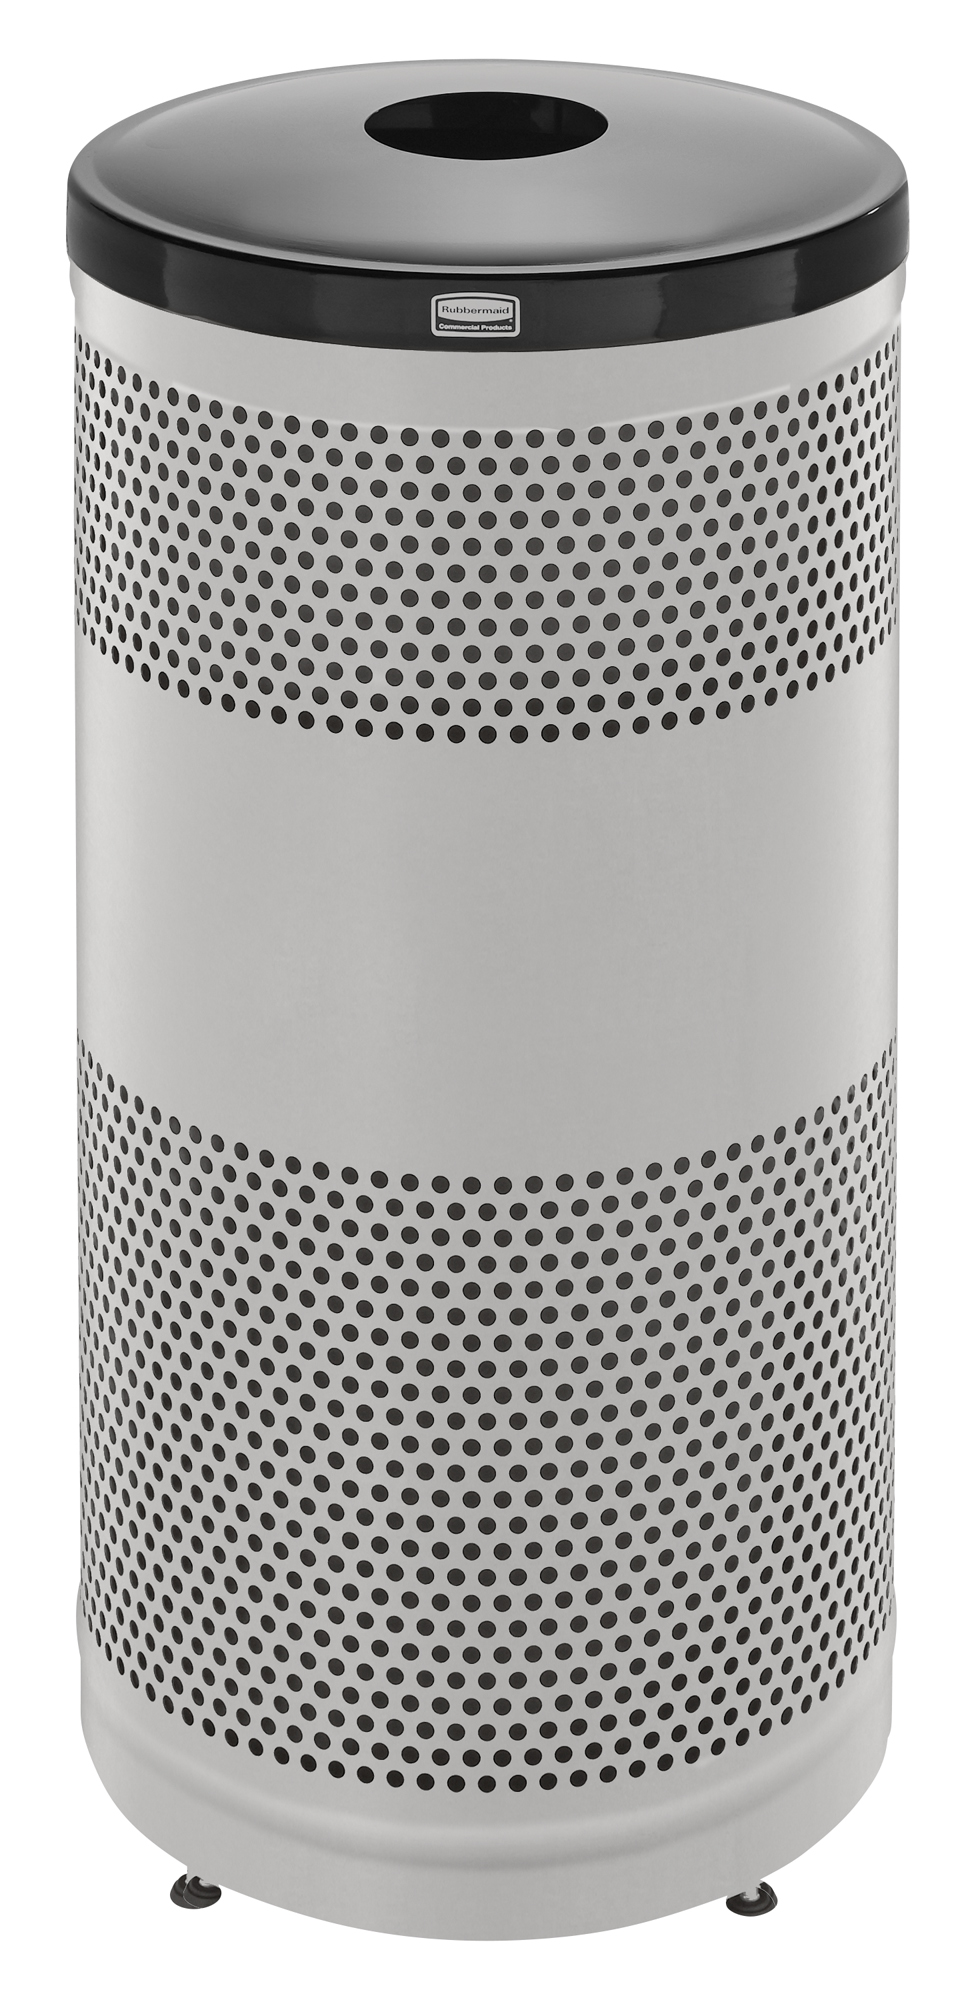 S3SSG  Classics Collection 25 Gallon Round Stainless Steel Recycling Receptacle with Glass/Bottle Lid